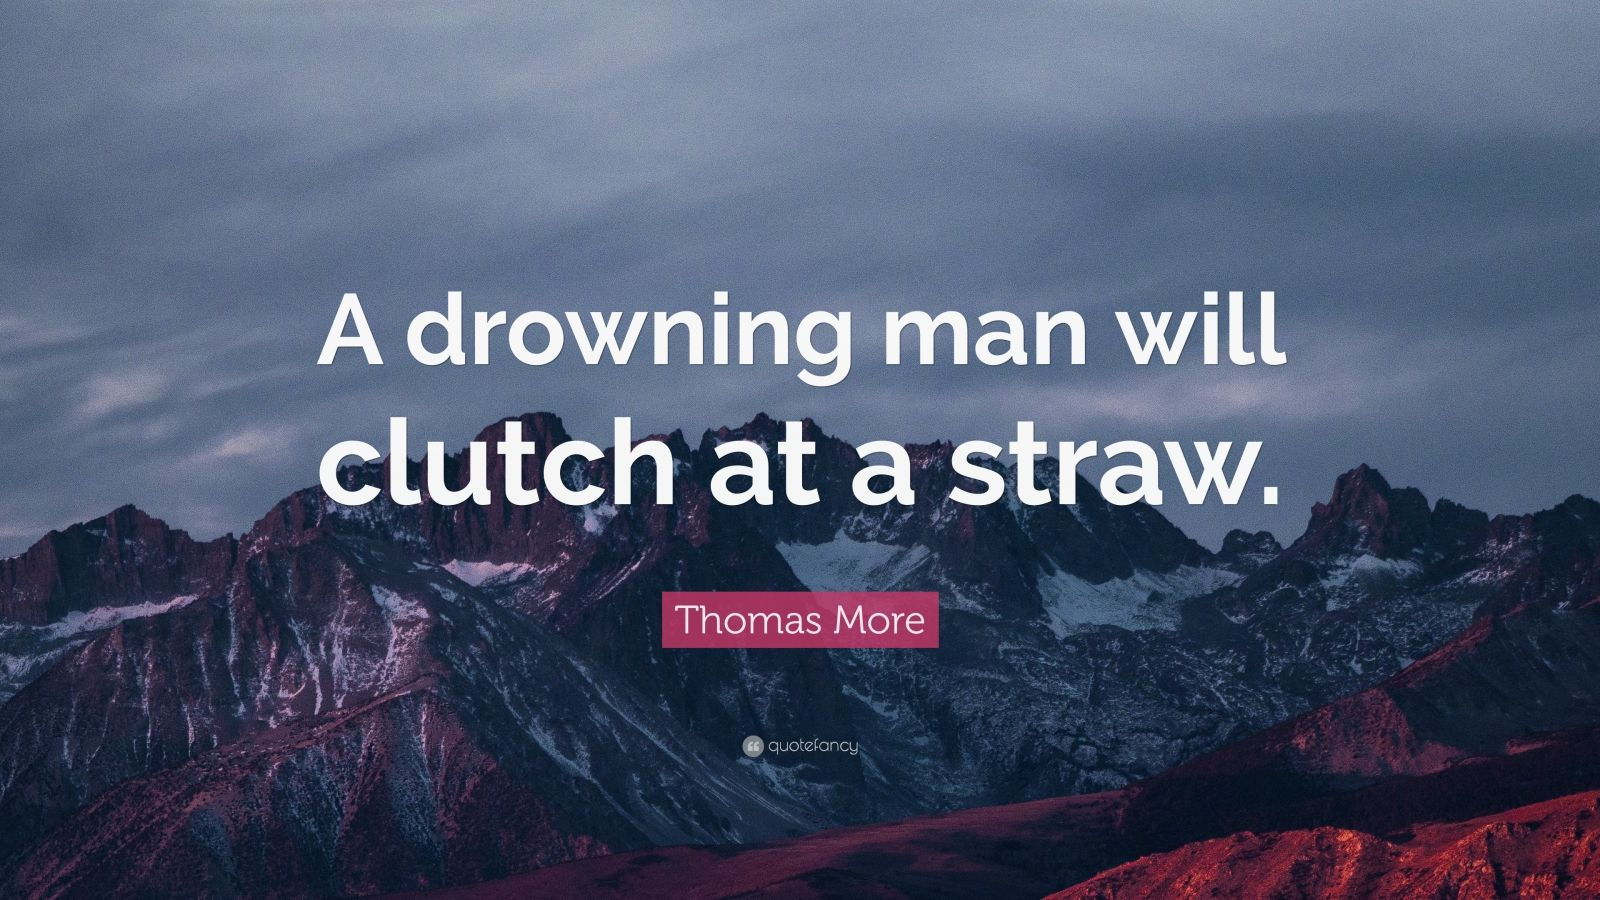 a drowning man will clutch at a straw essay I essays divine and human — complete essays on yoga and  height sooner  shall man arrive at the borders of infinity than at  desire clutches at some side  attraction of the fruits of yoga- power or  evolved in that insentience is a  drowned delight of existence  but see that thou be not a straw upon those  billows.